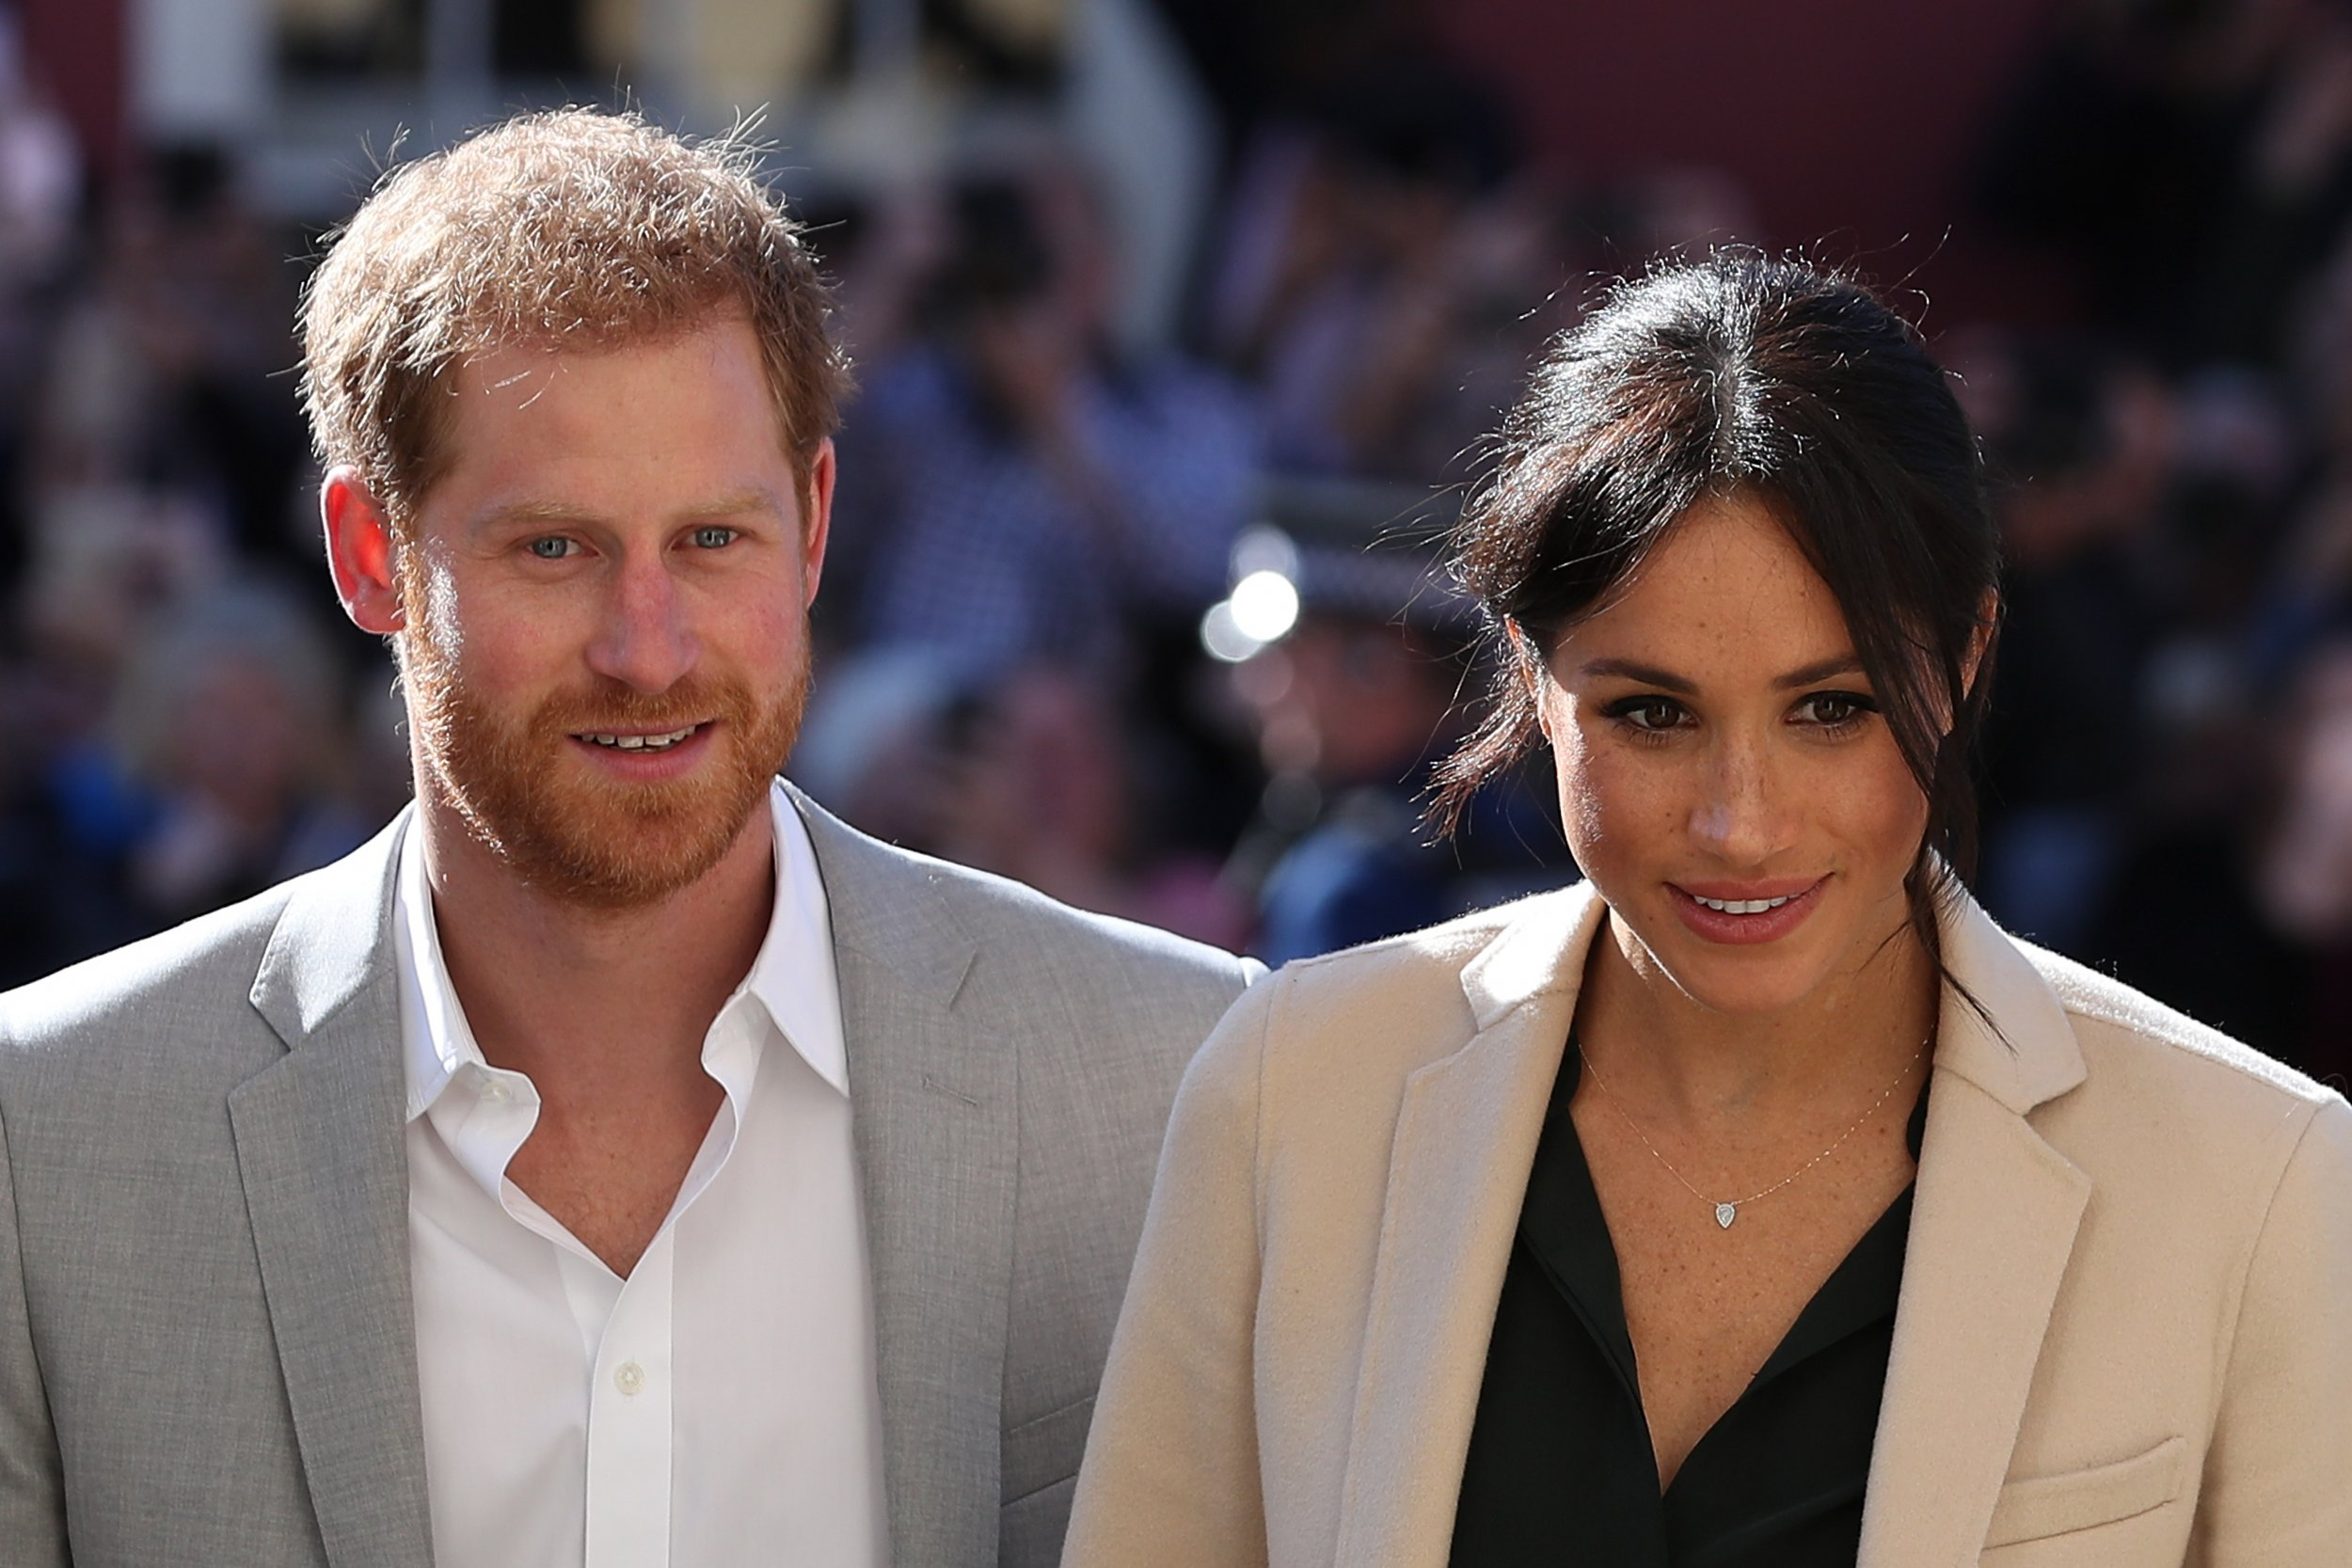 Here are the bizarre royal pregnancy rules Meghan Markle will have to follow